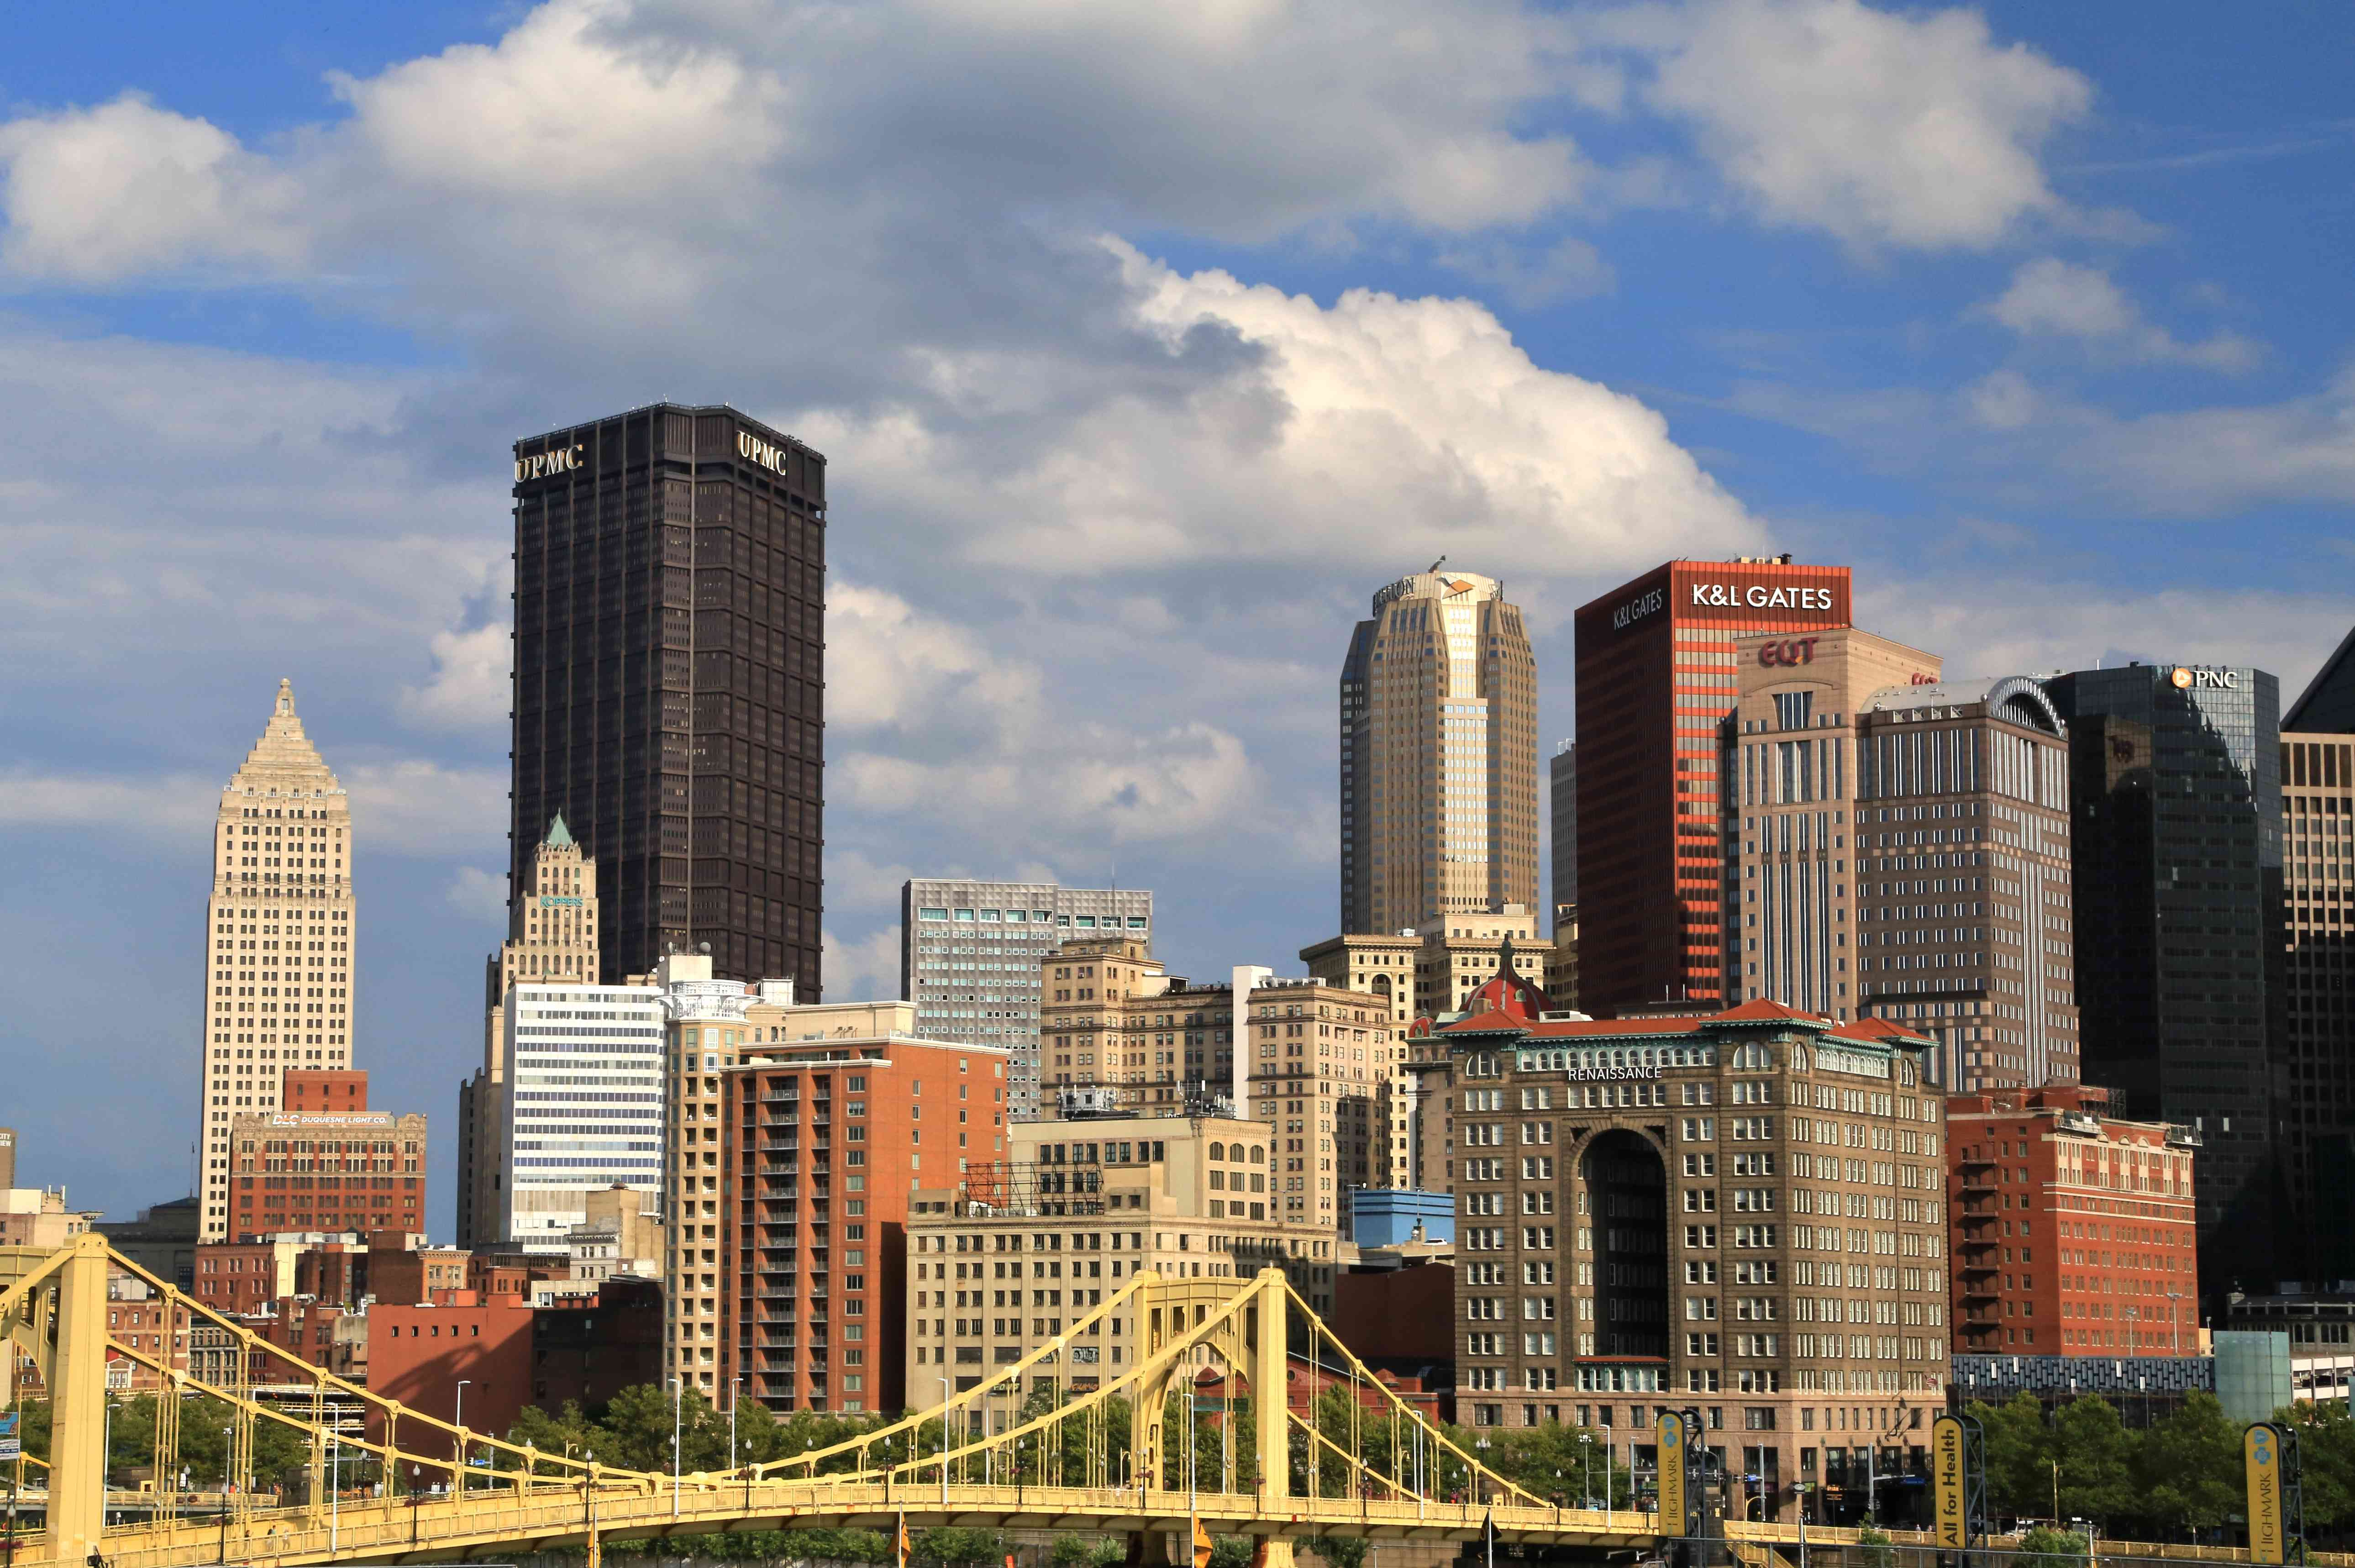 Pittsburgh downtown skyline